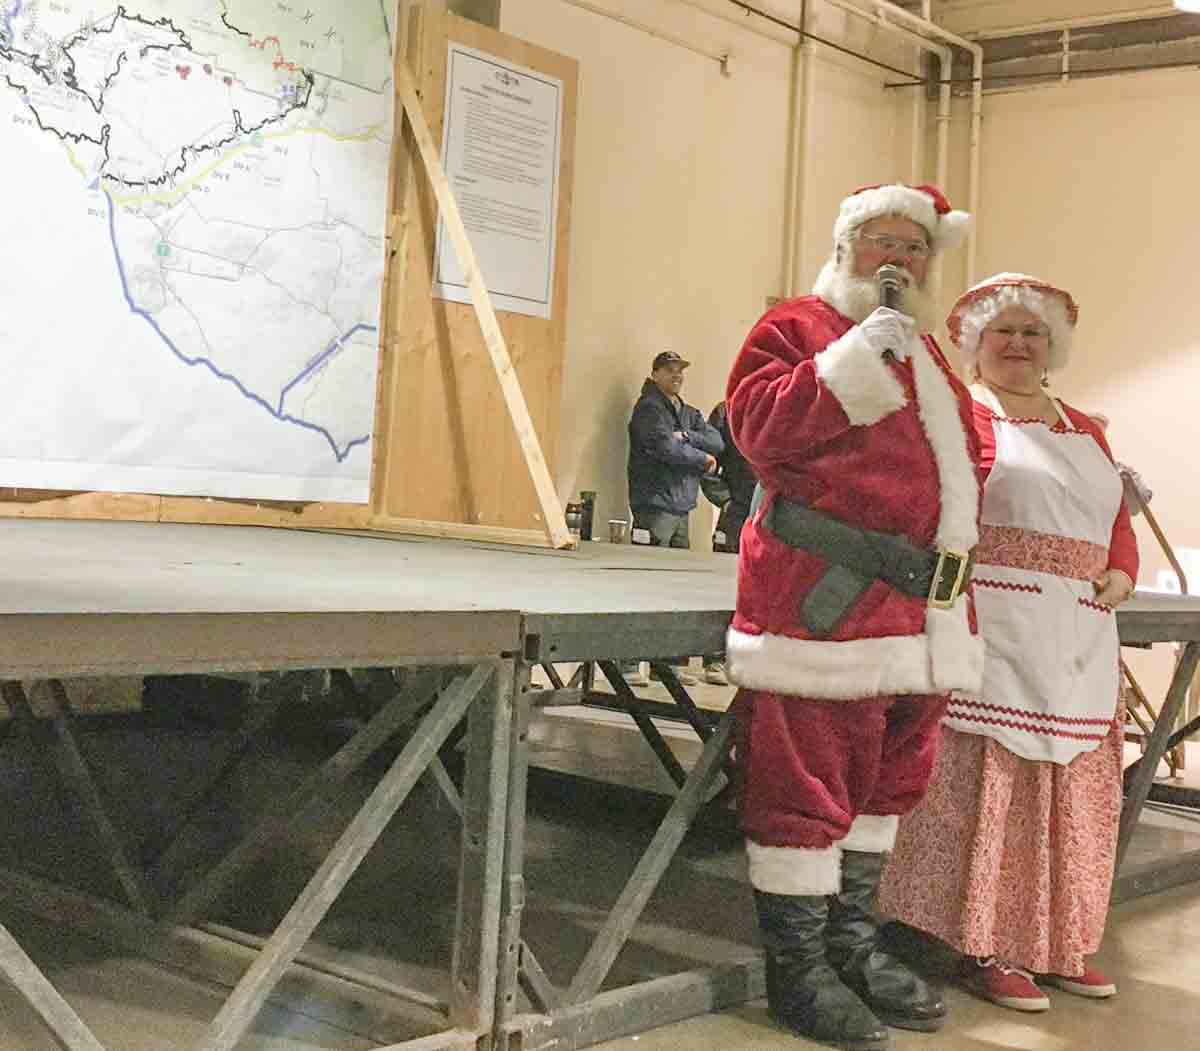 Santa and Mrs. Claus firefighters Thomas Fire